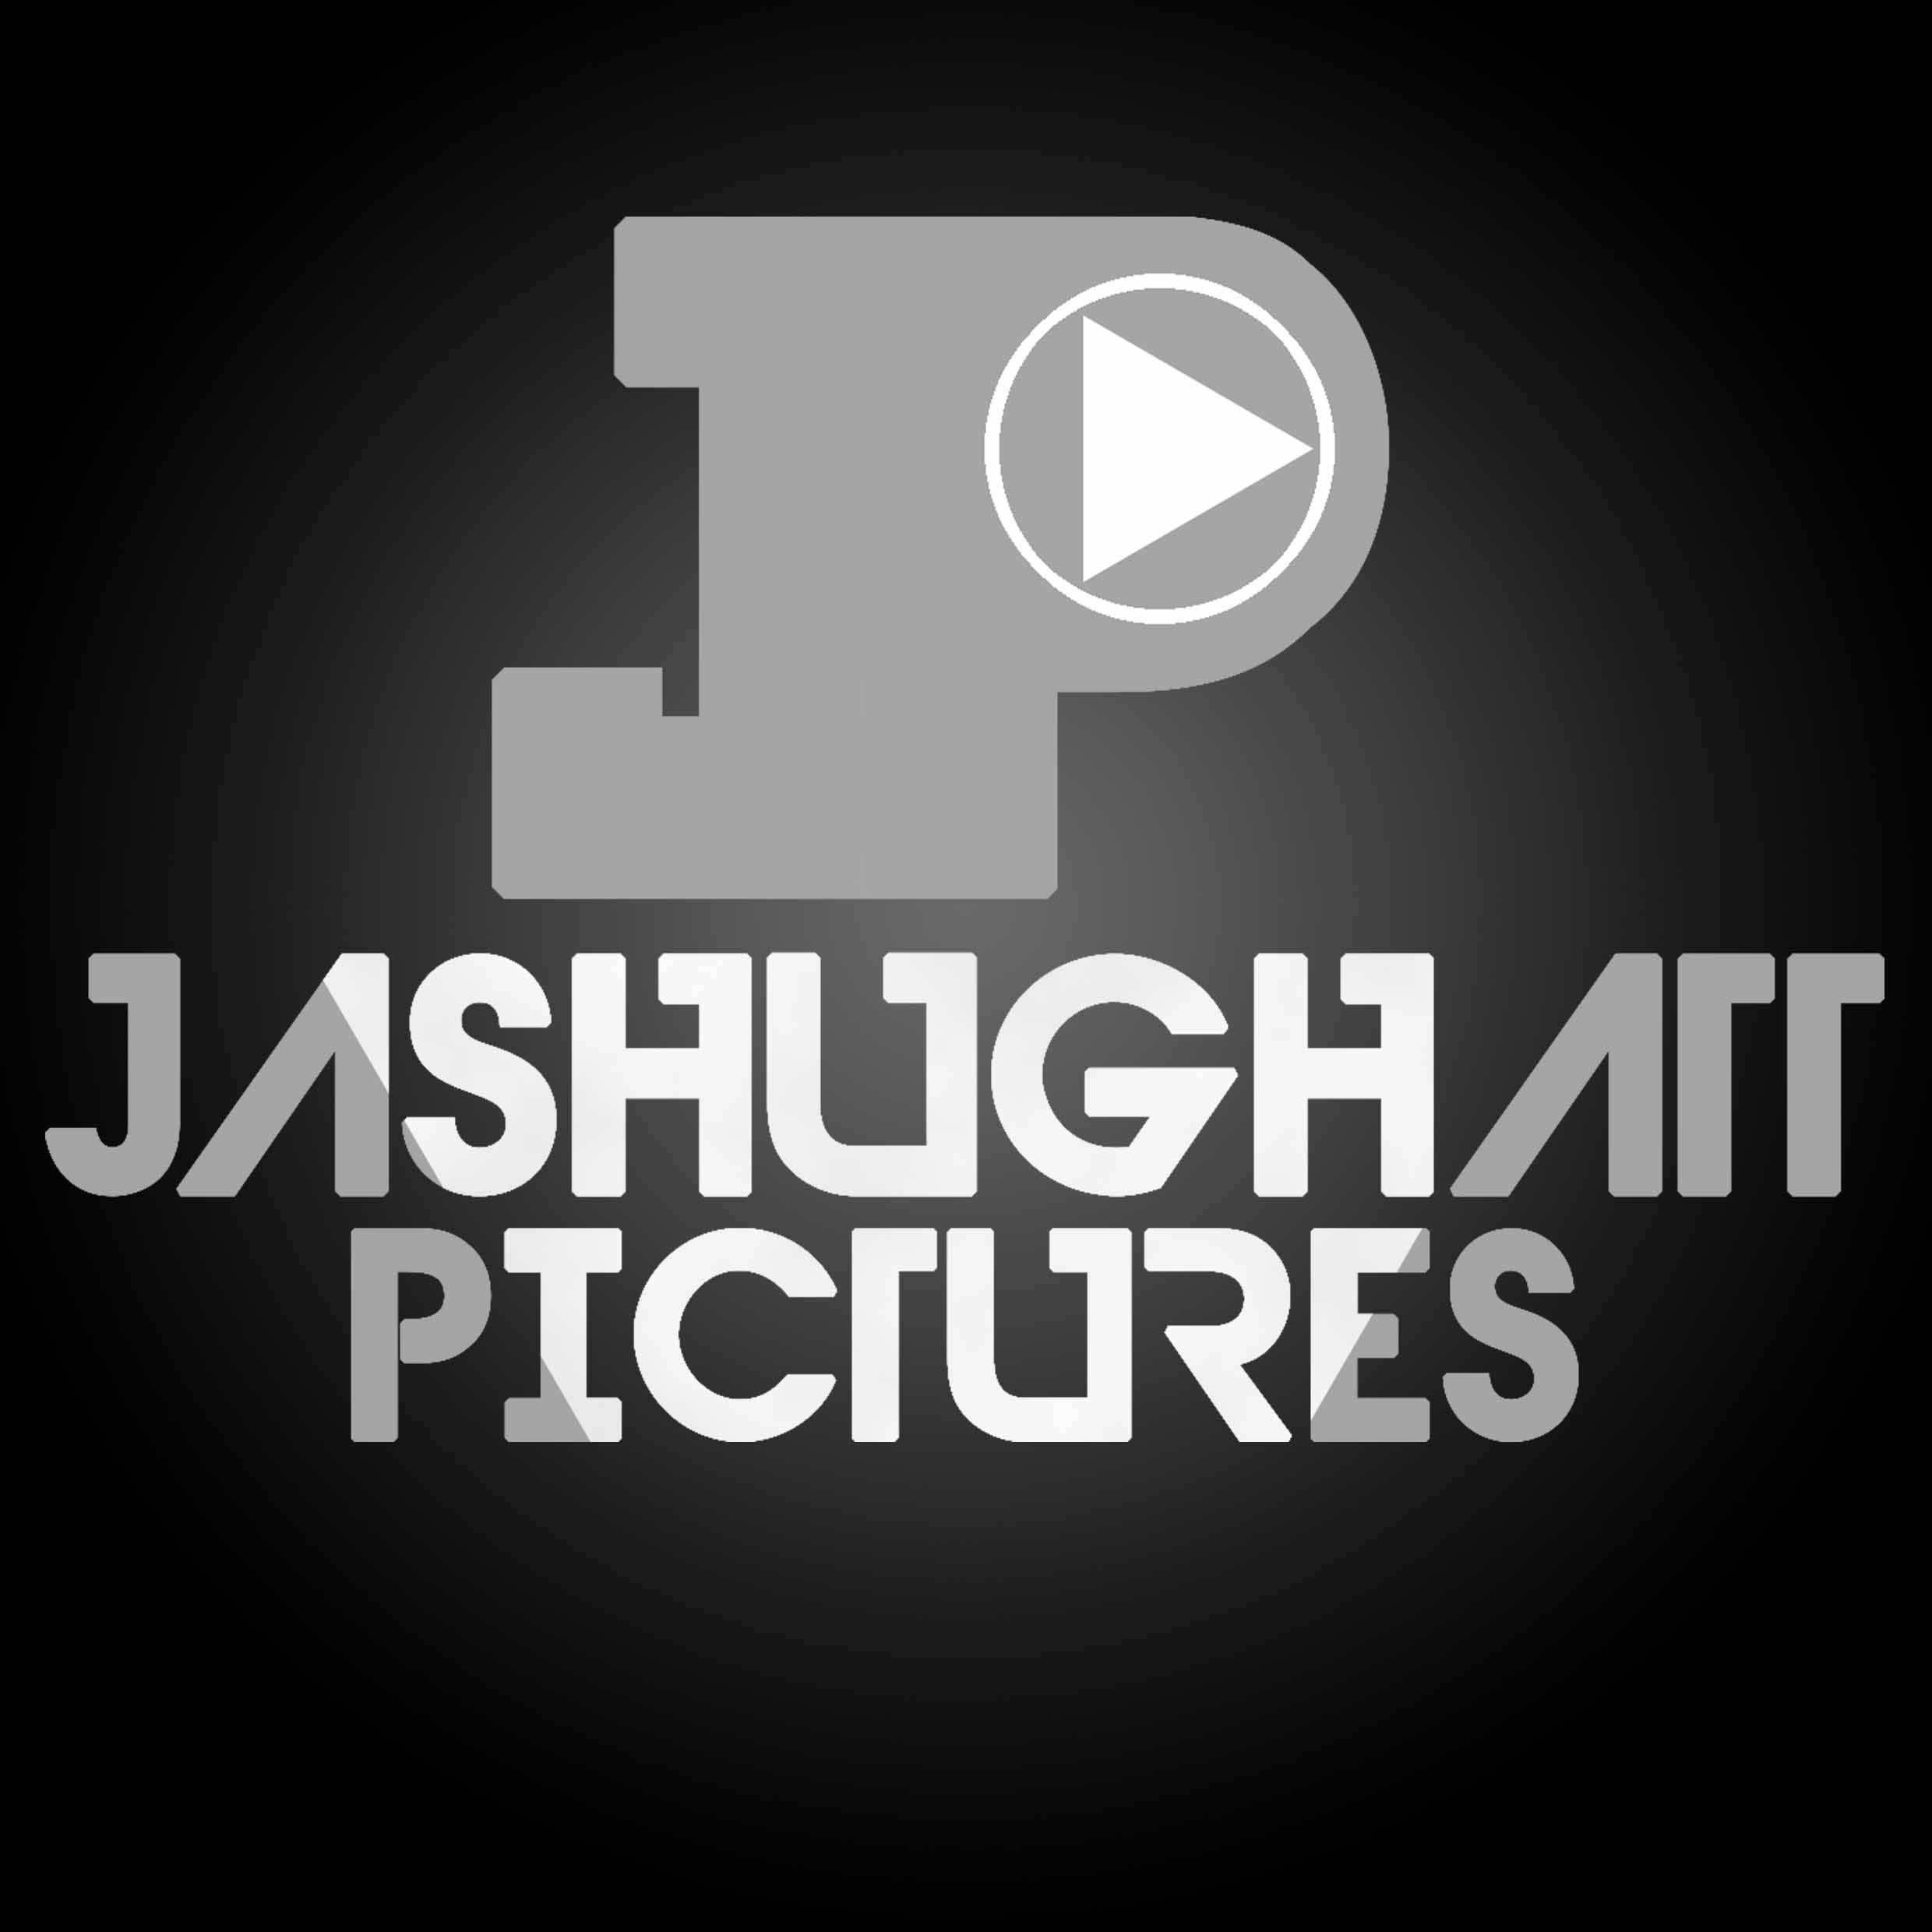 Jashughatt Pictures │ Digital Media production team